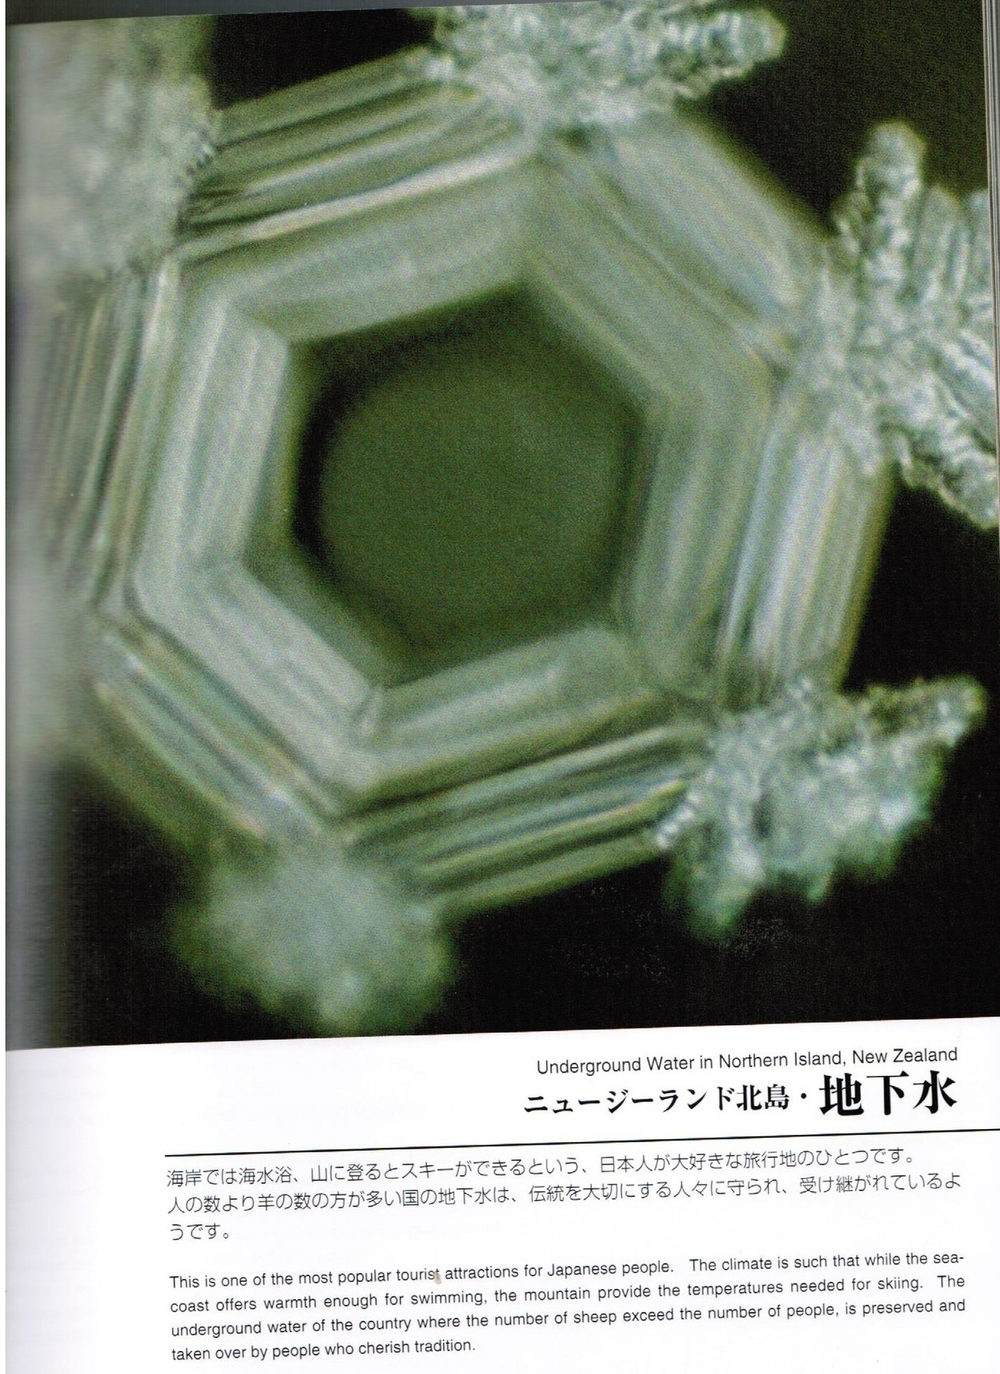 Dr Emoto crystal grd water nth is NZ 001.jpg